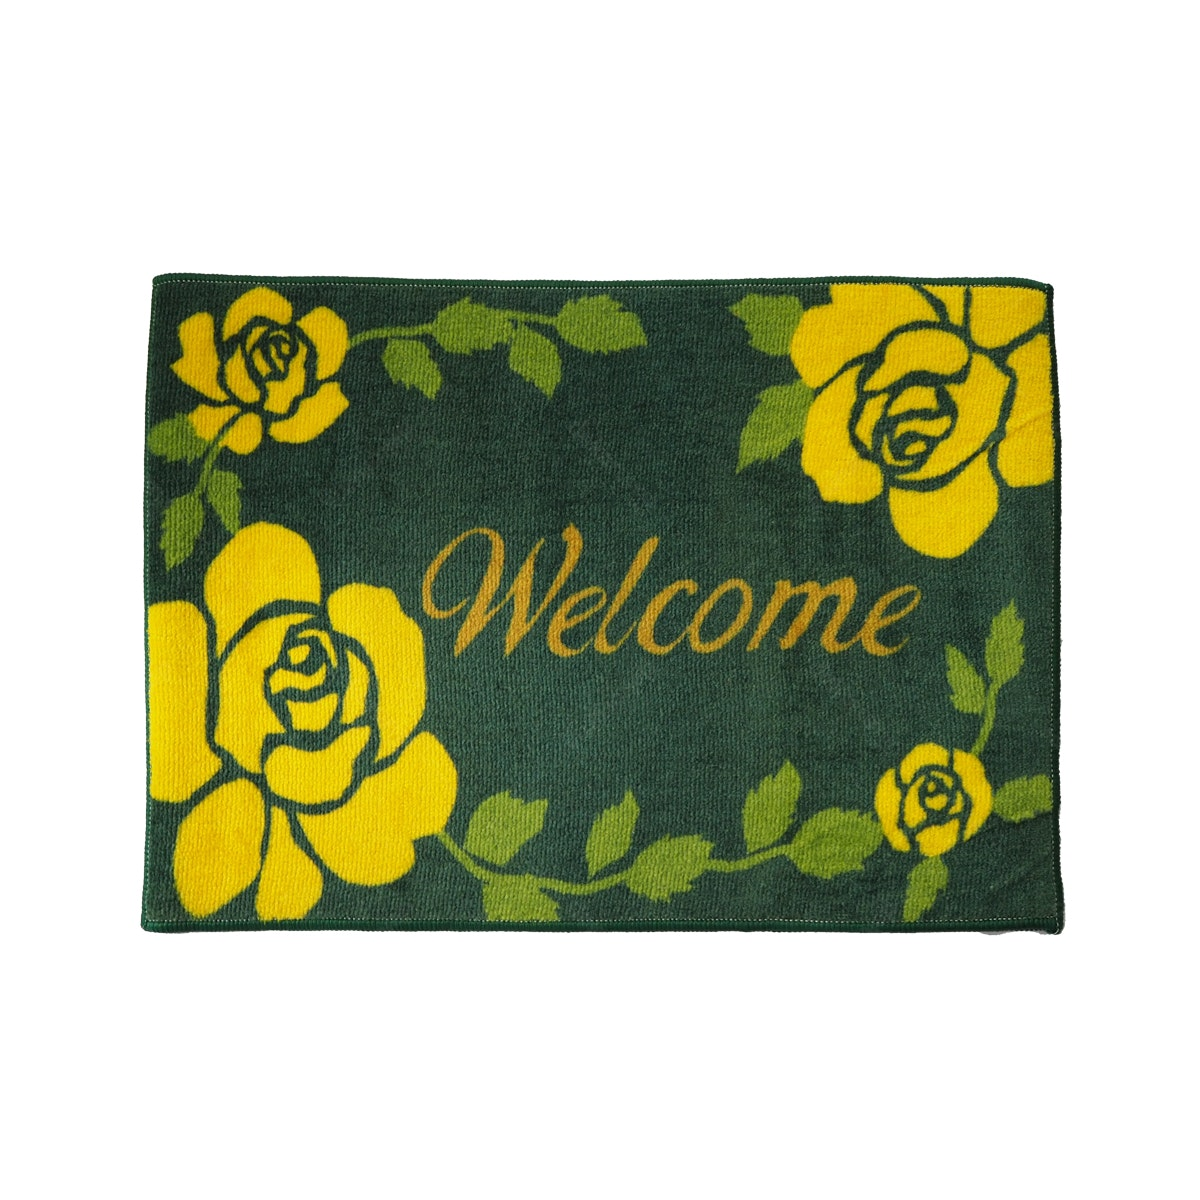 Lanamora Keset Anti Slip Doormat Welcome - Green